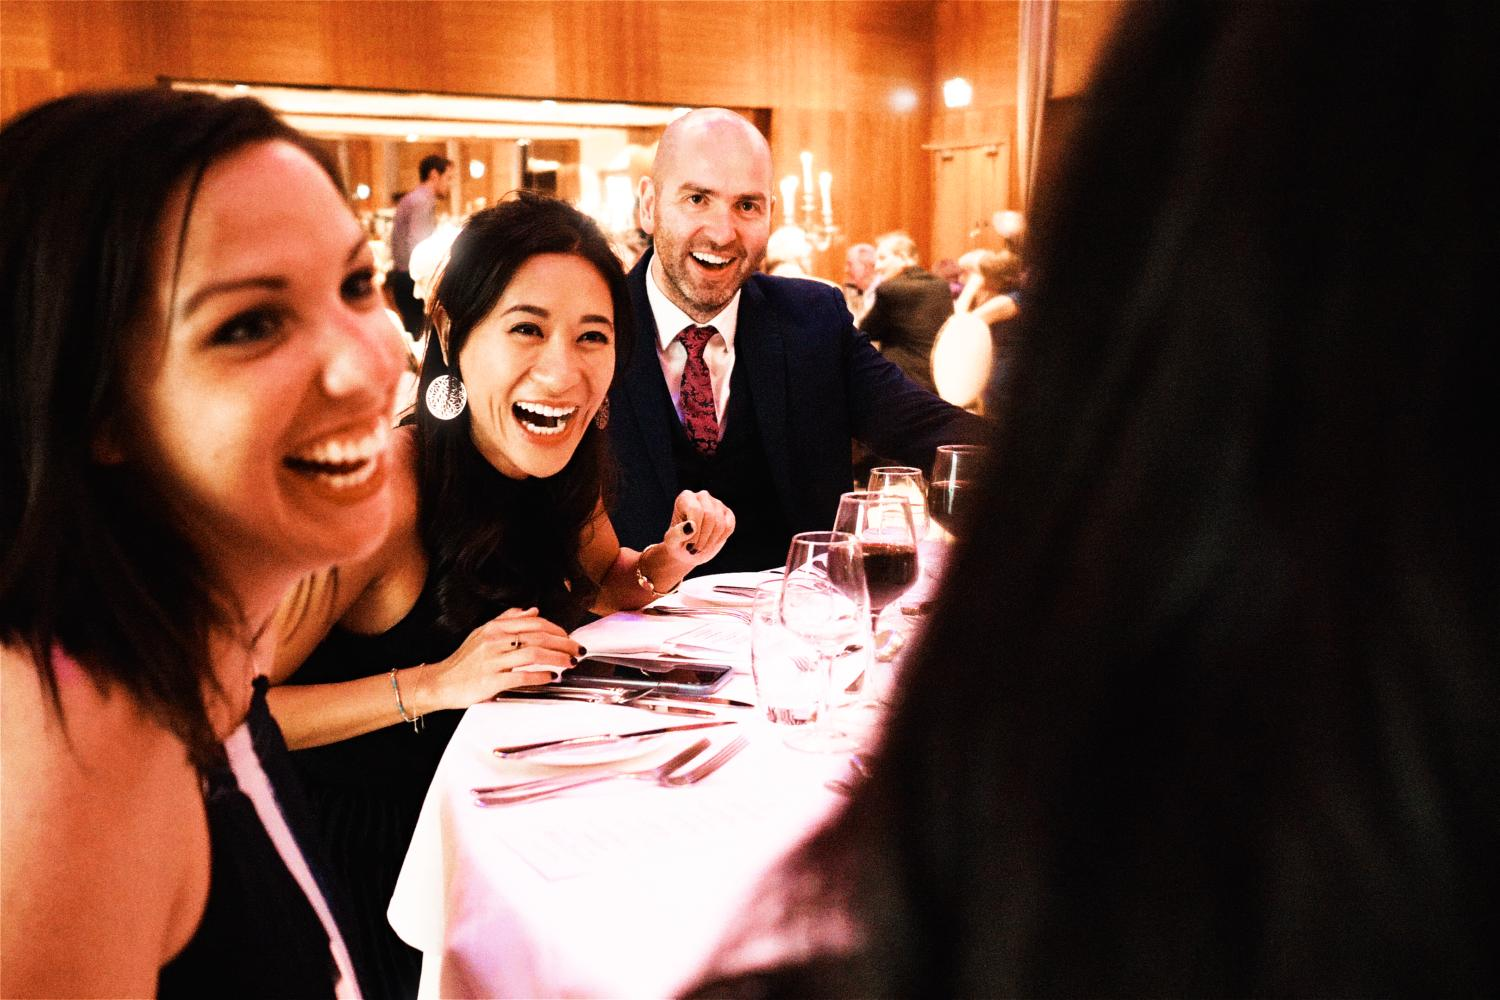 Wedding guests laugh at an evening reception